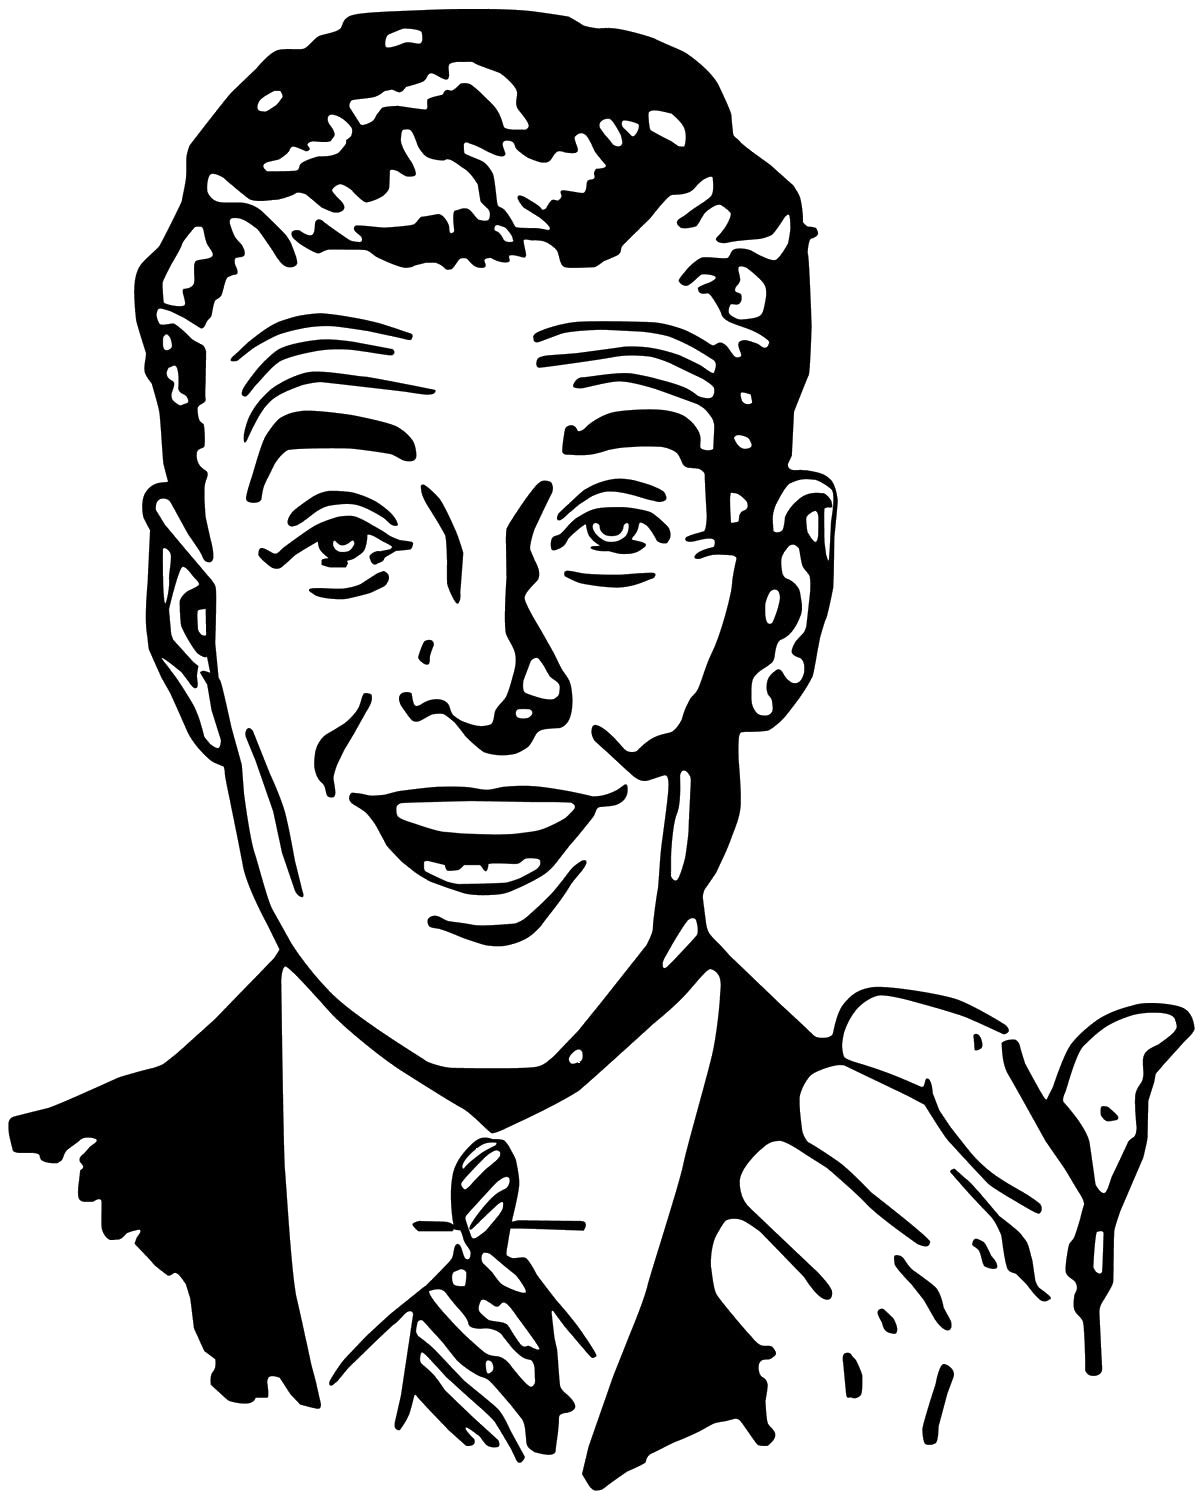 50 s guy clipart free vector Man From 50s Png & Free Man From 50s.png Transparent Images #19158 ... vector